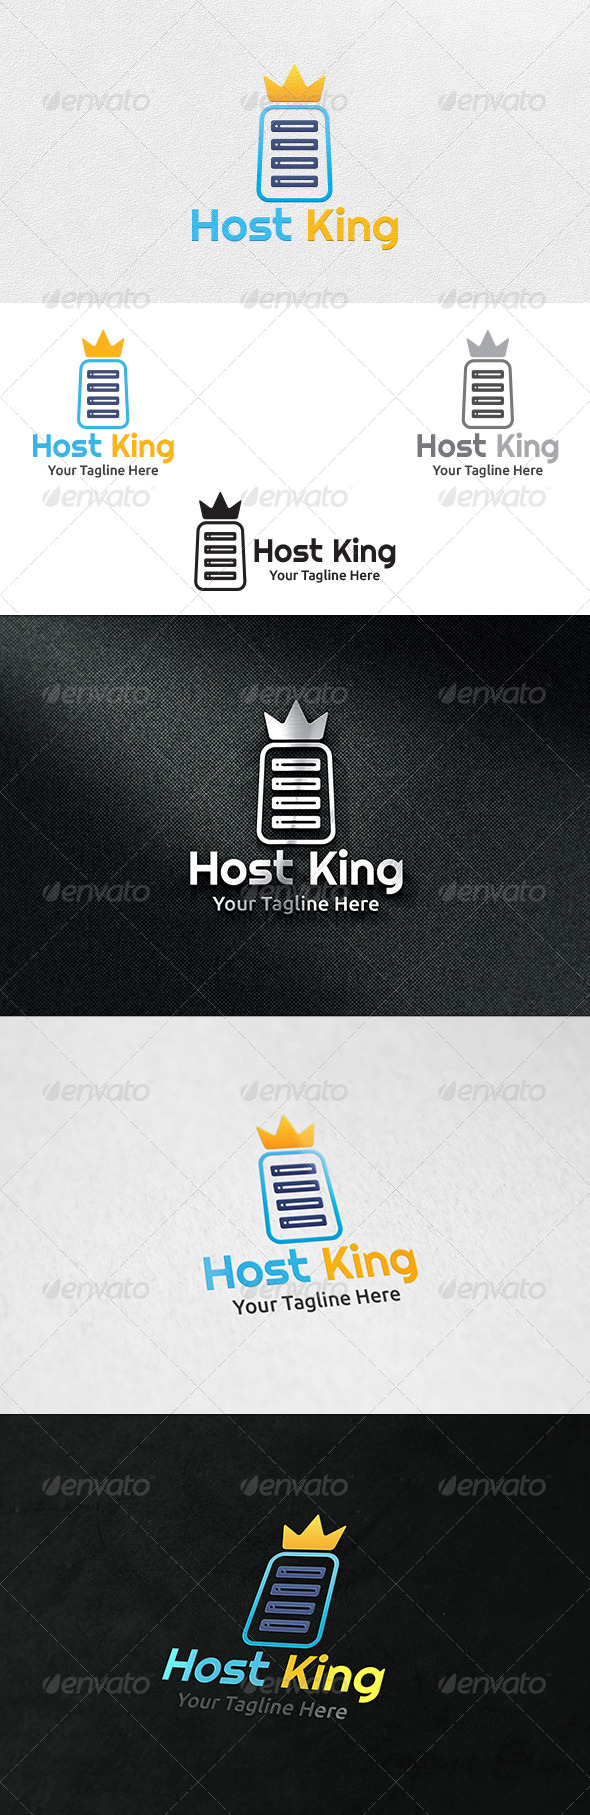 GraphicRiver Host King Logo Template 6959434